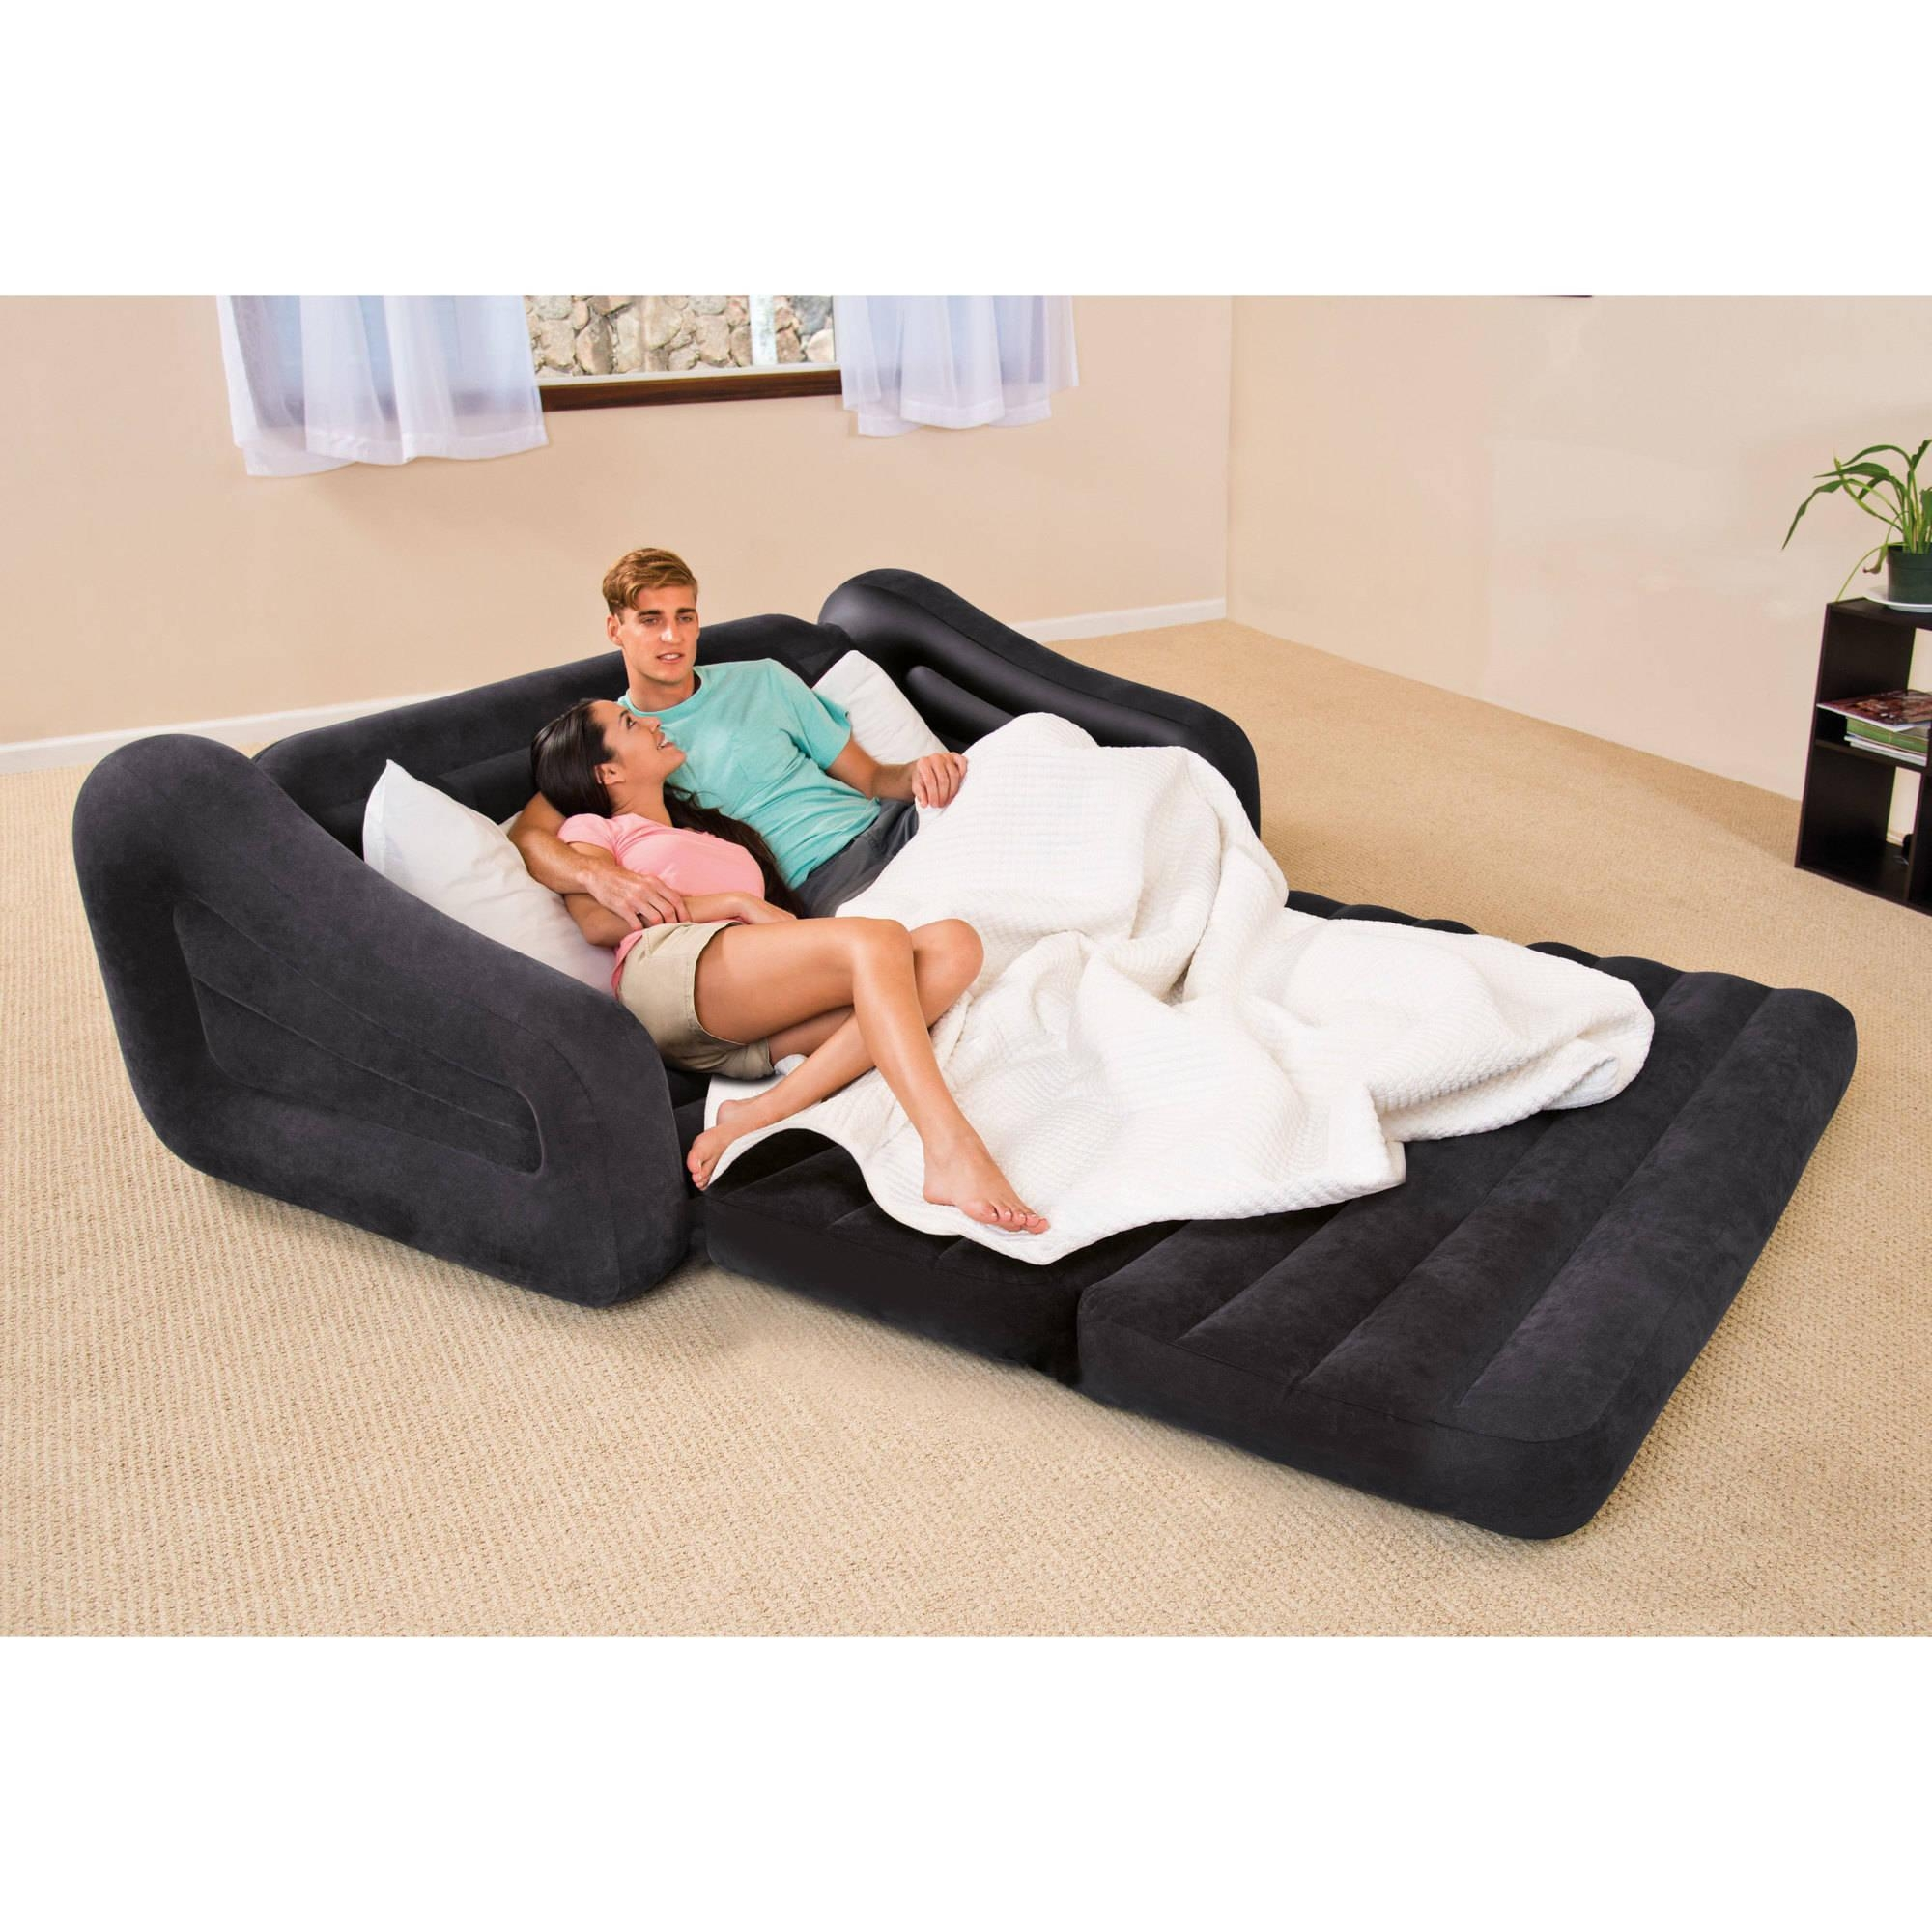 Intex Queen Inflatable Pull Out Sofa Bed – Walmart In Intex Air Couches (Image 15 of 20)